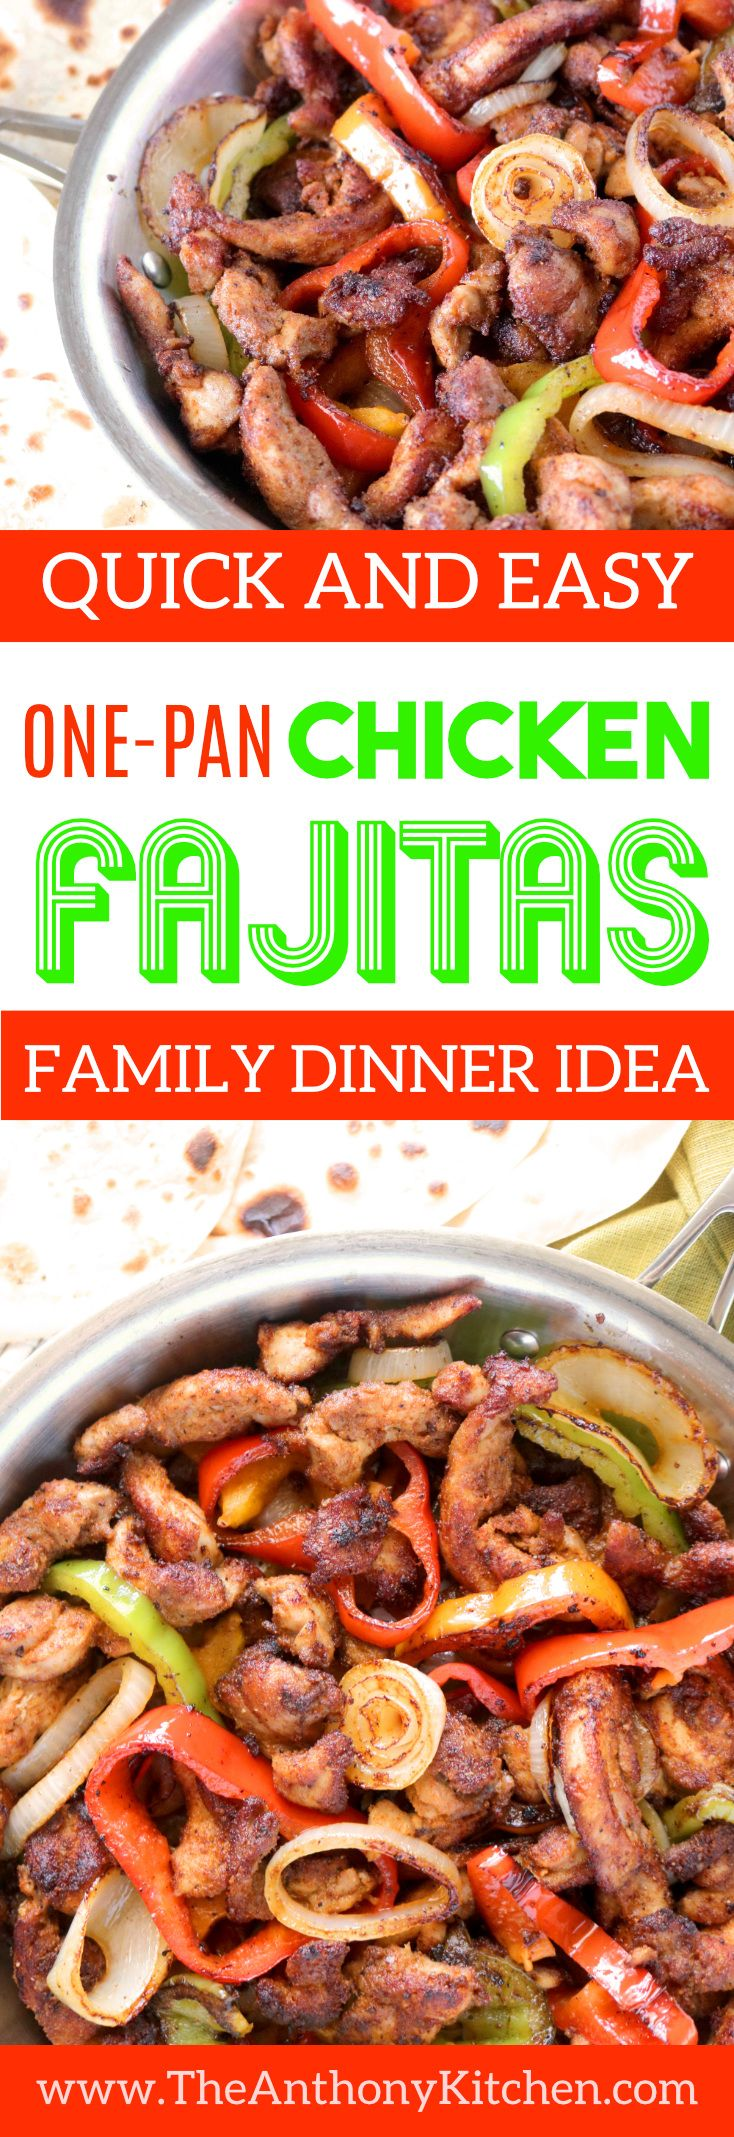 Skillet Chicken Fajitas   A one-pan, quick-fix dinner featuring skillet fajitas made with chicken thighs, onions, and bell peppers   #onepandinners #onepotdinner #healthychickendinner #healthyfamilydinner #texmex #chickenfajitas